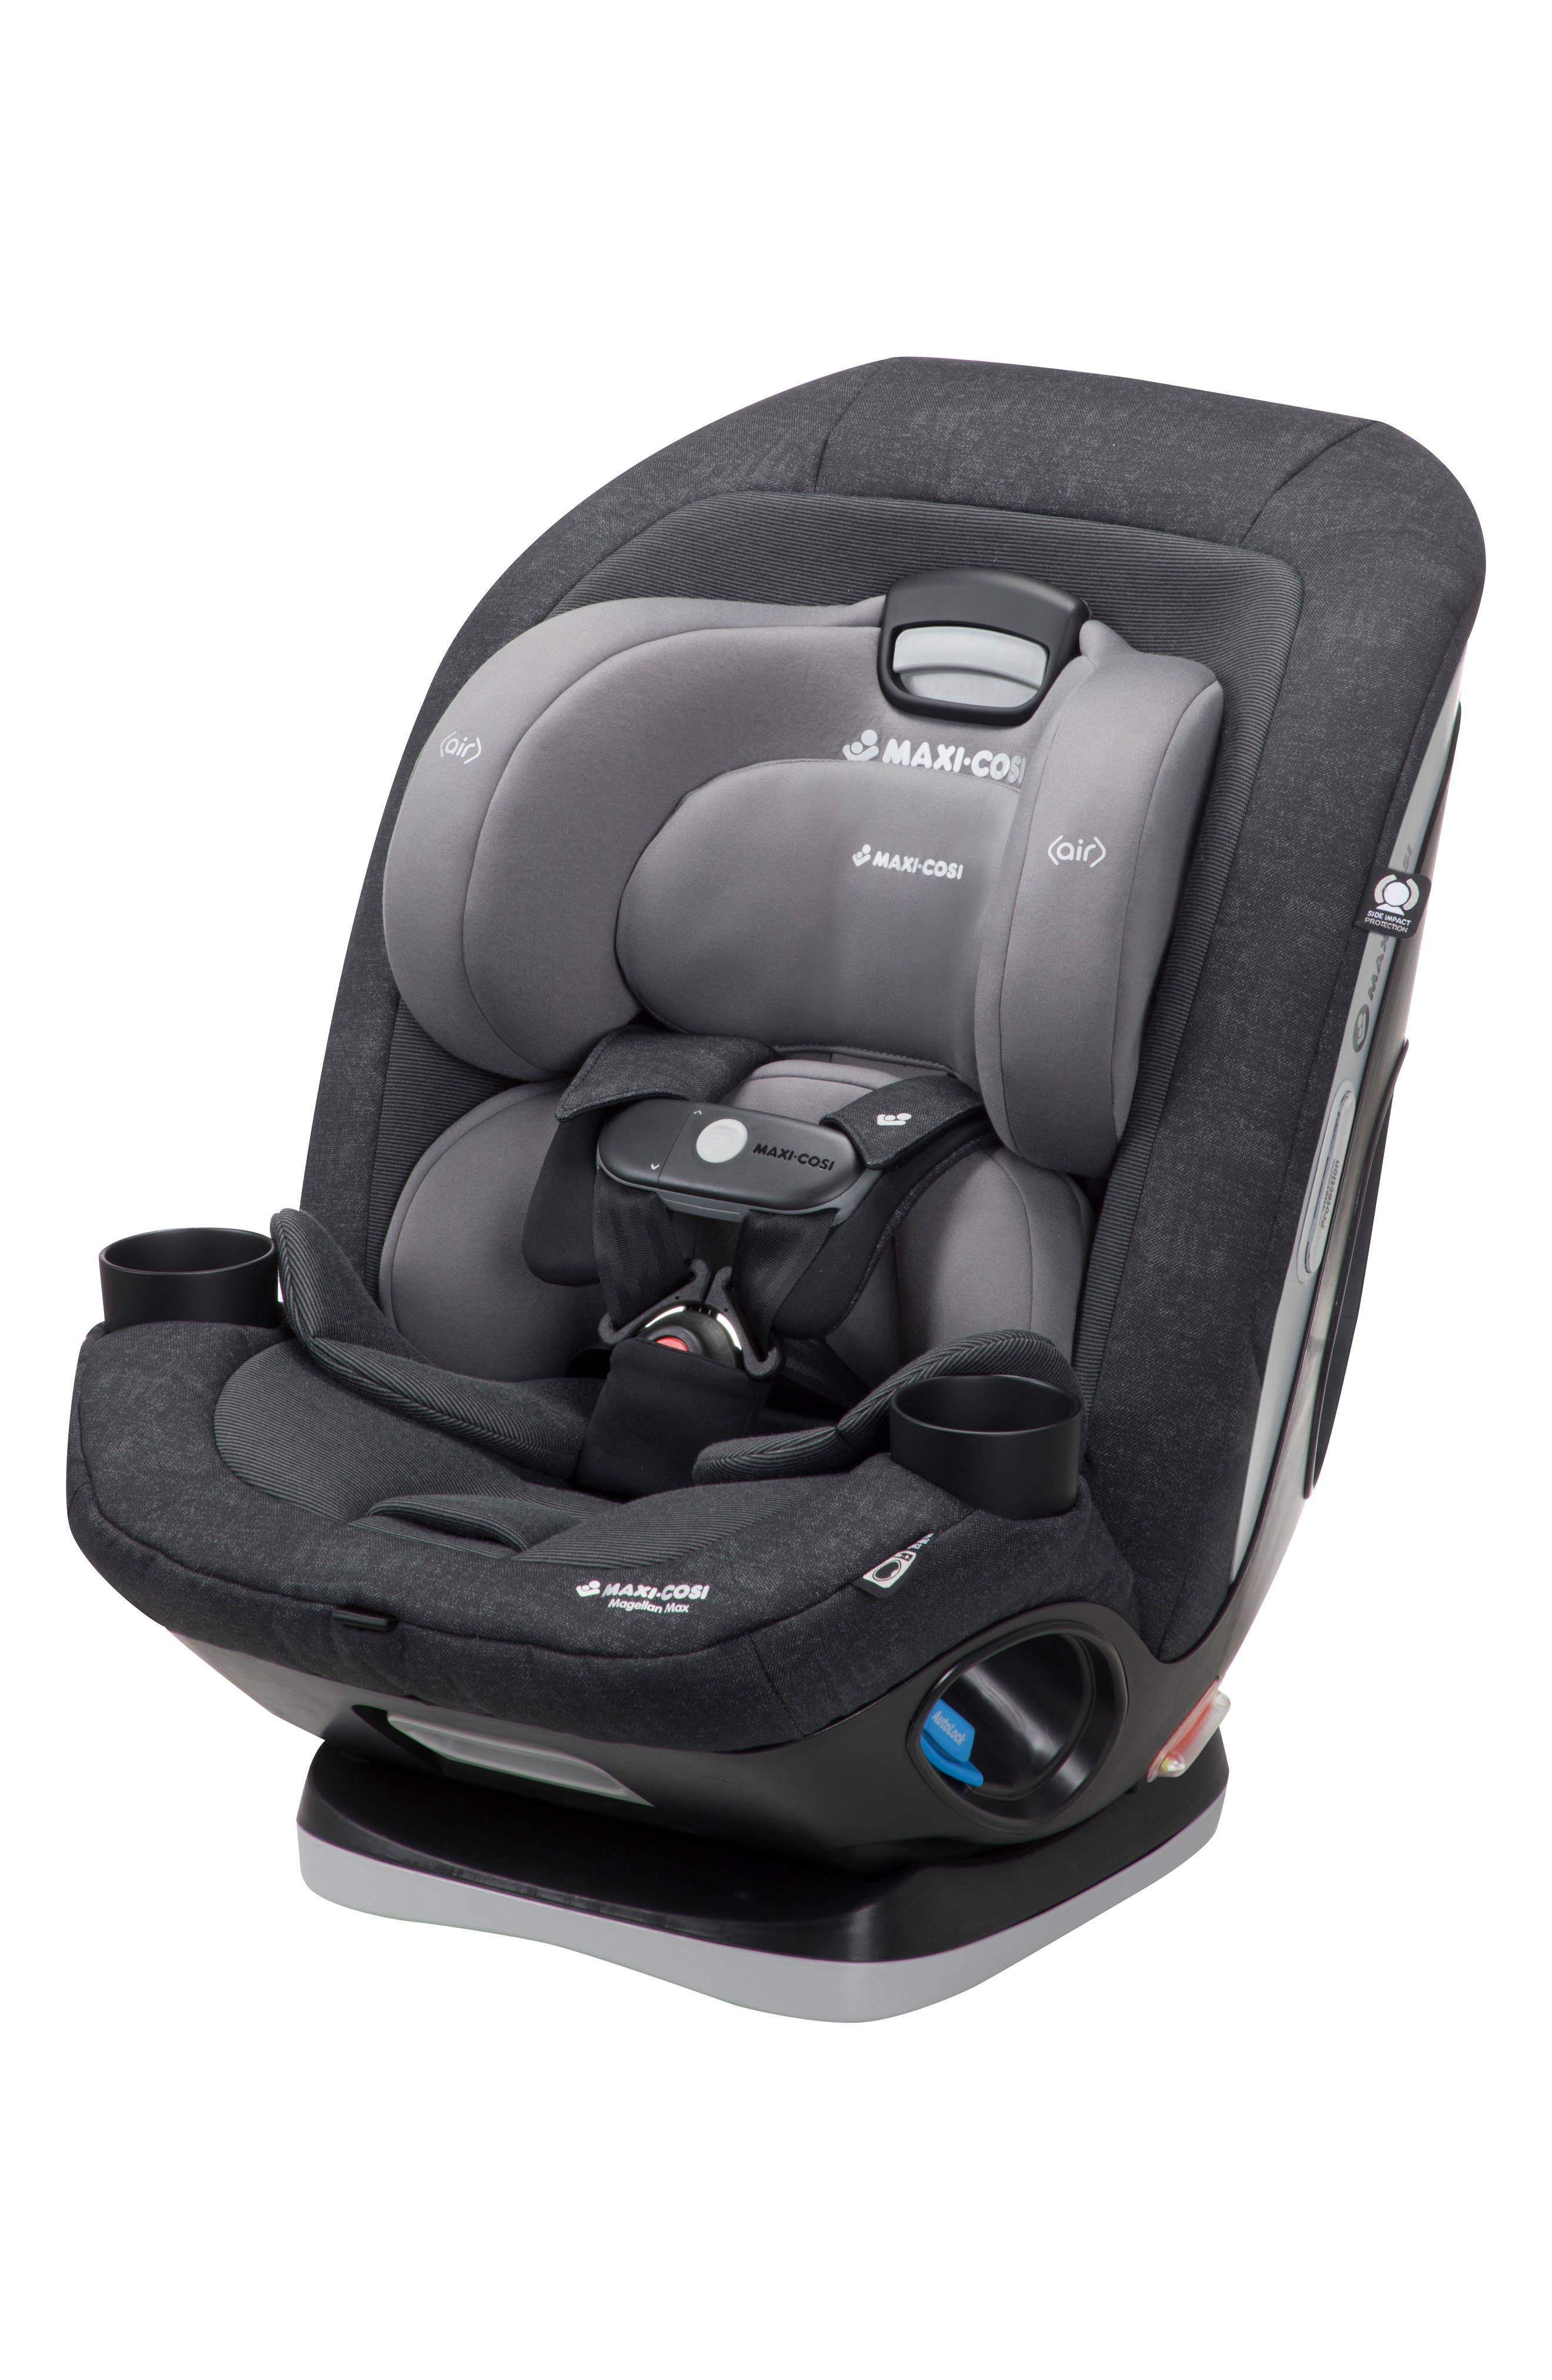 Magellan Max 2018 5-in-1 Convertible Car Seat,                             Alternate thumbnail 9, color,                             NOMAD BLACK